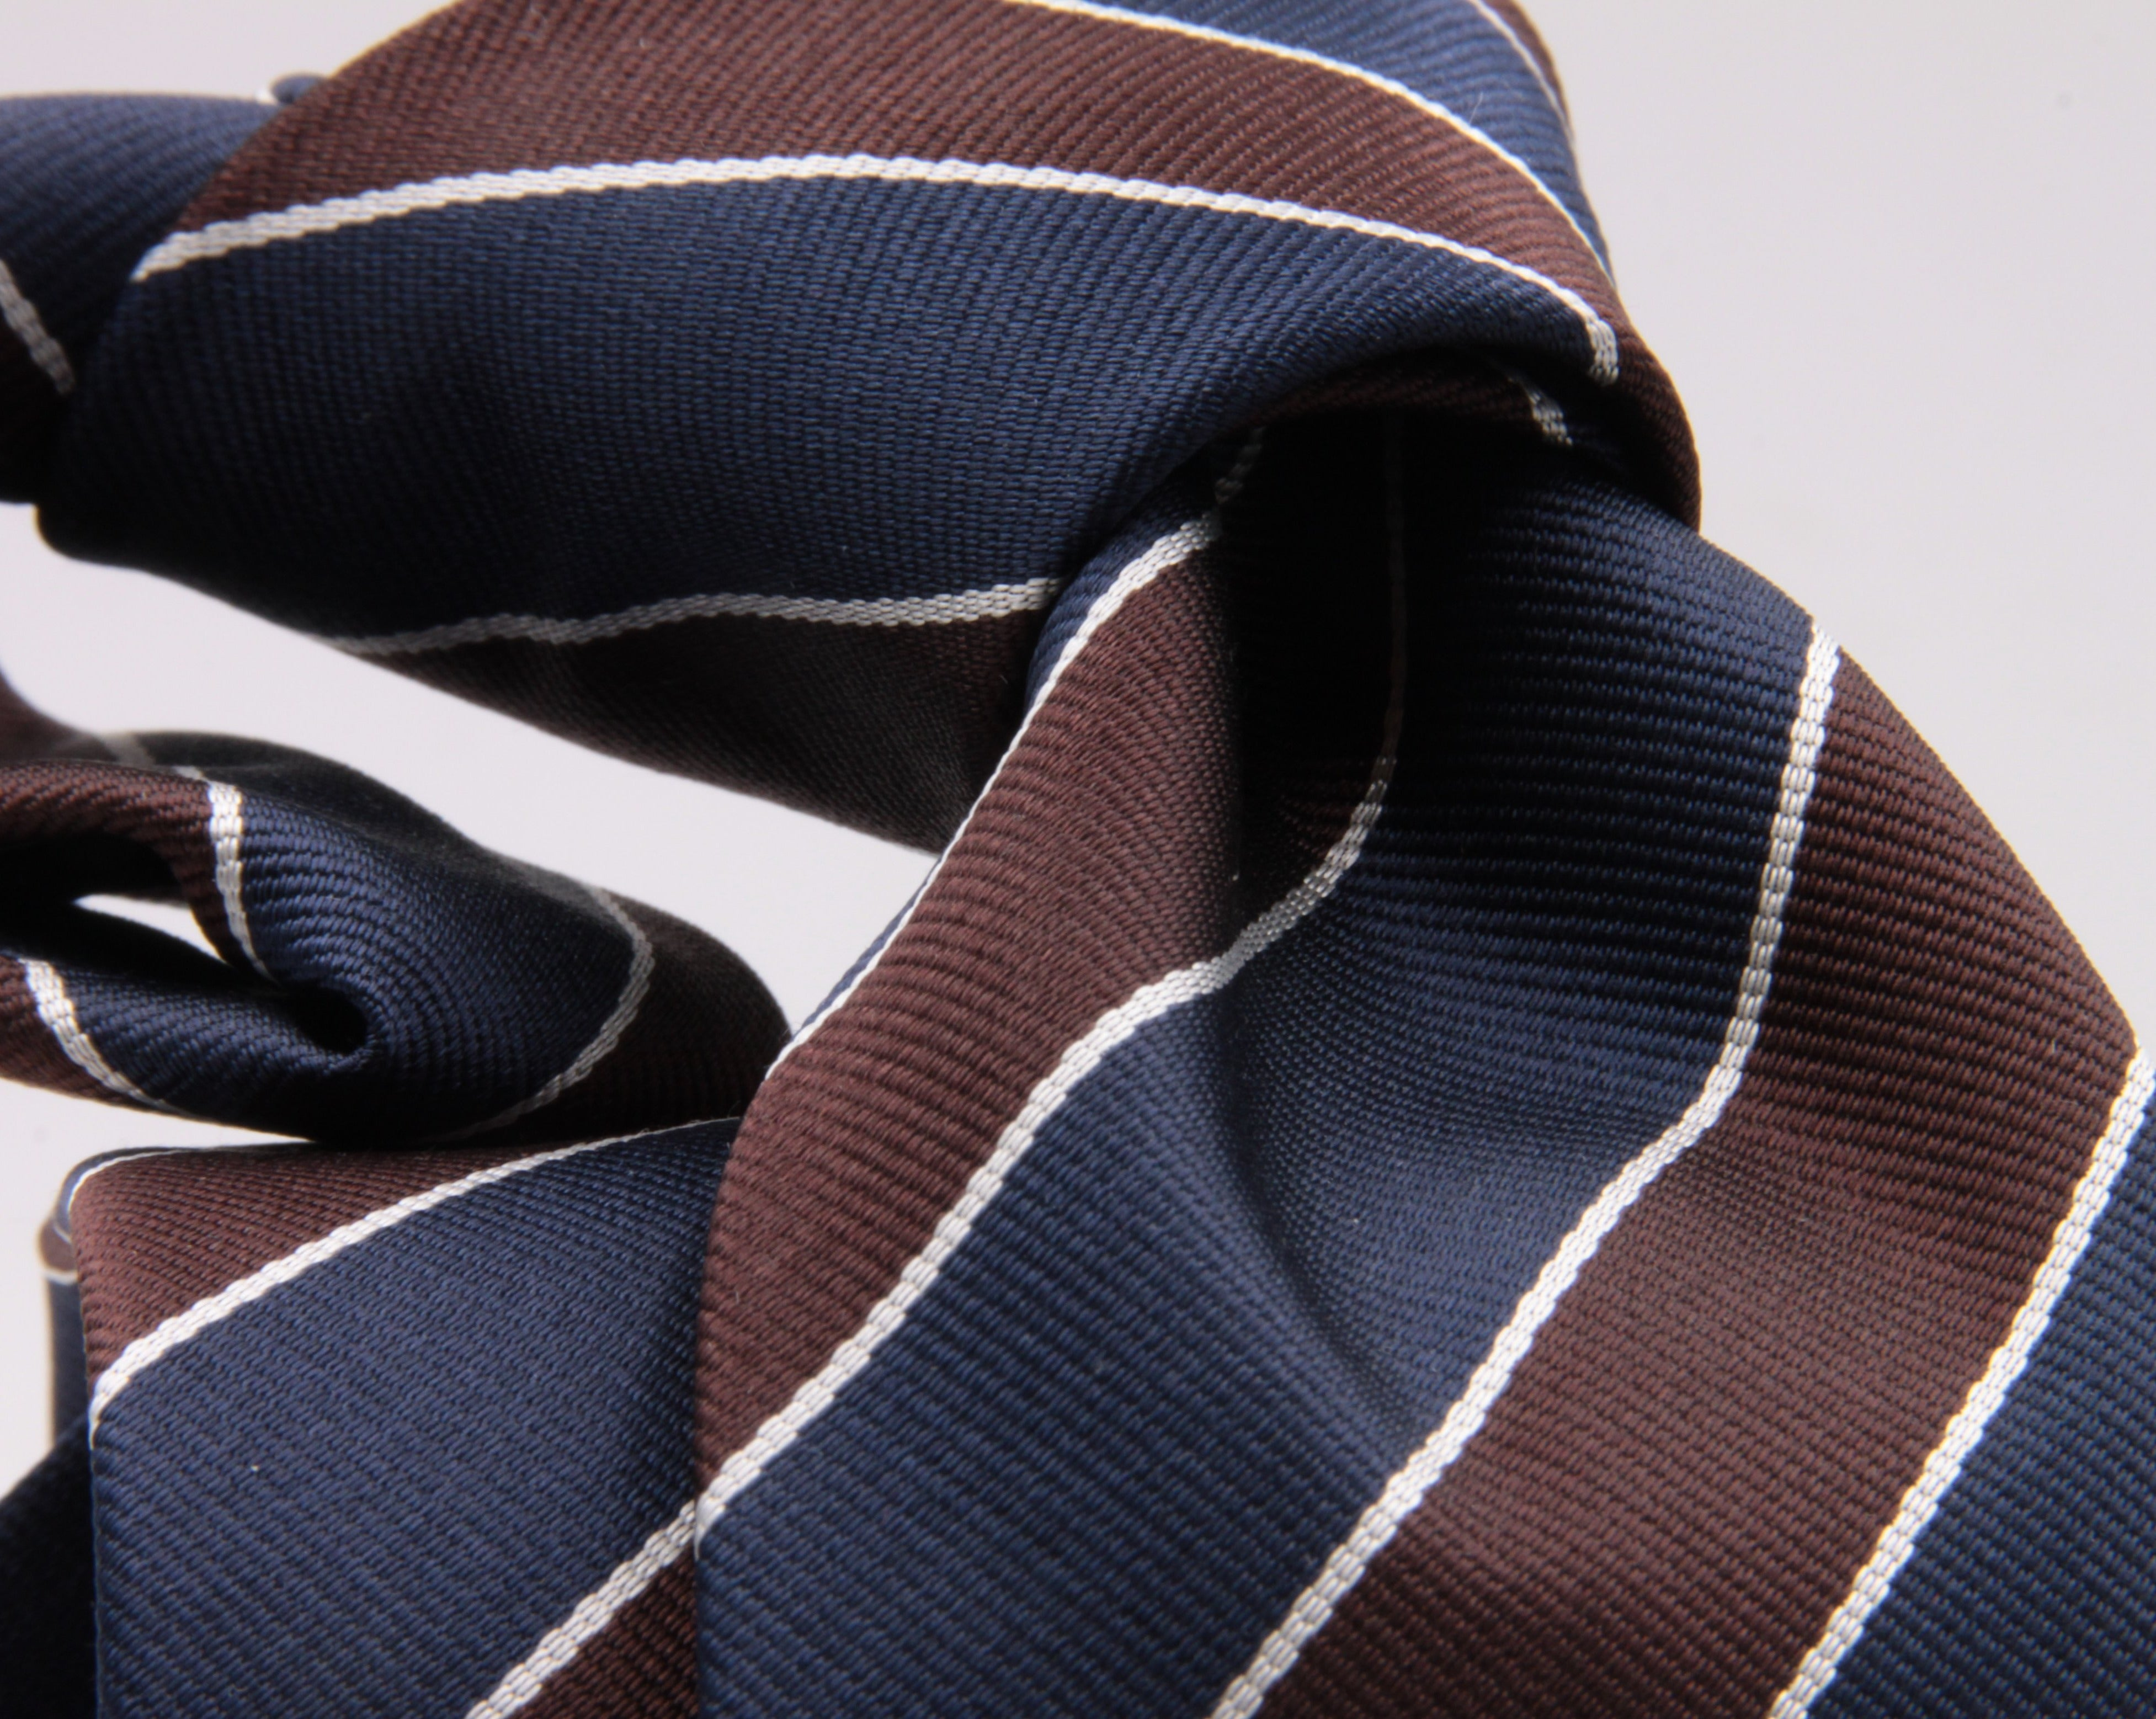 "Holliday & Brown for Cruciani & Bella 100% Silk Jacquard  Regimental ""Marguerite Club"" Blue, Brown and White stripes tie Handmade in Italy 8 cm x 150 cm #5111"